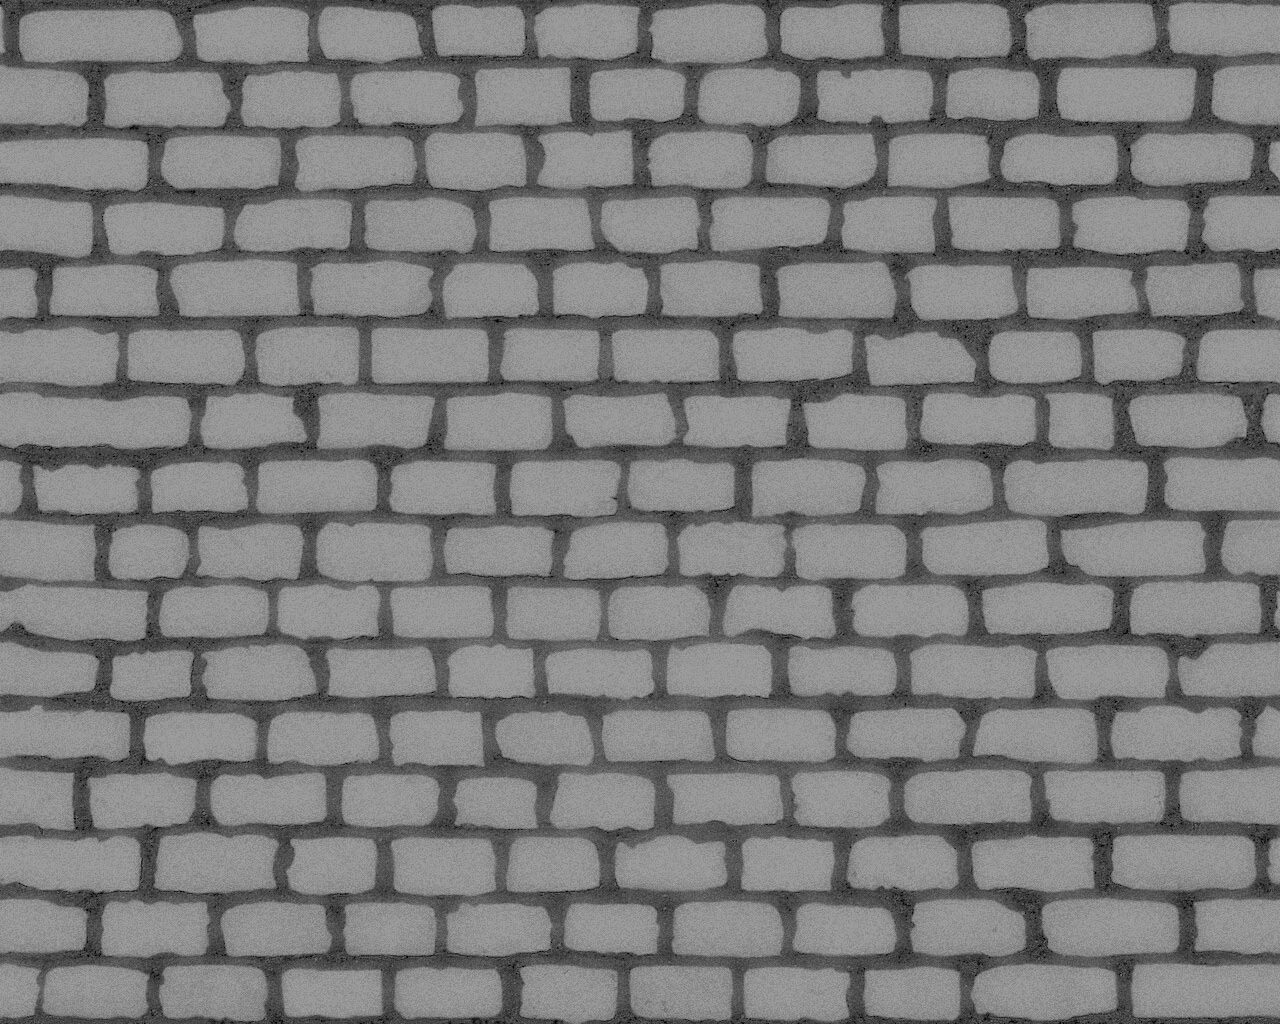 35 Brick Wall Backgrounds